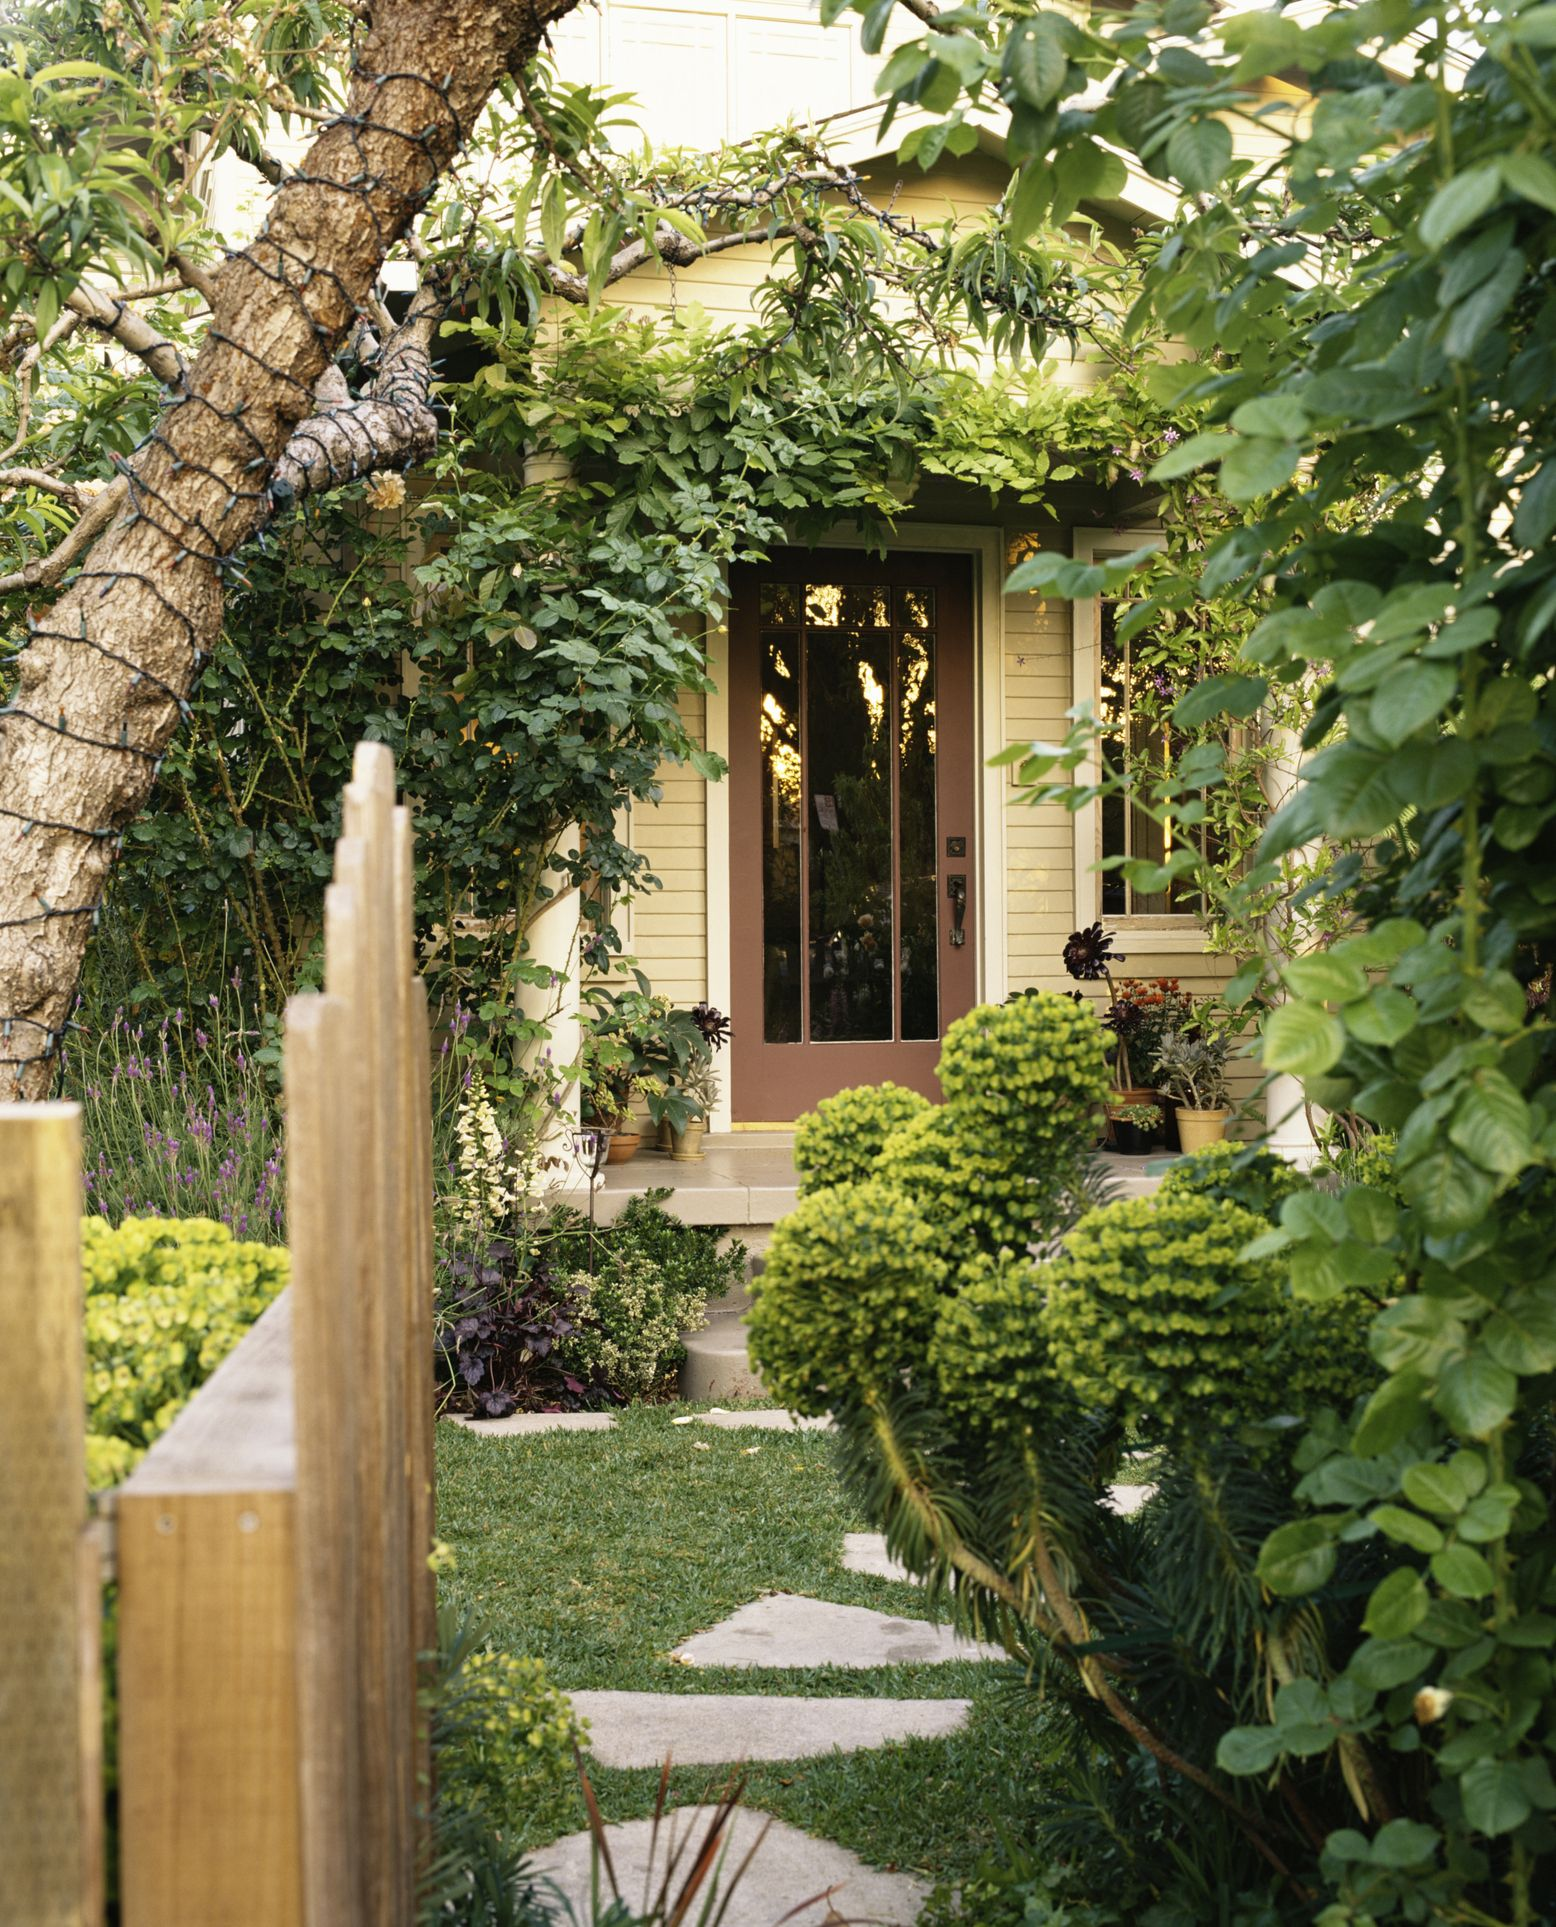 How To Landscape A Backyard On A Budget: Gallery Of T House Creative Architects 17 Houses Gardens